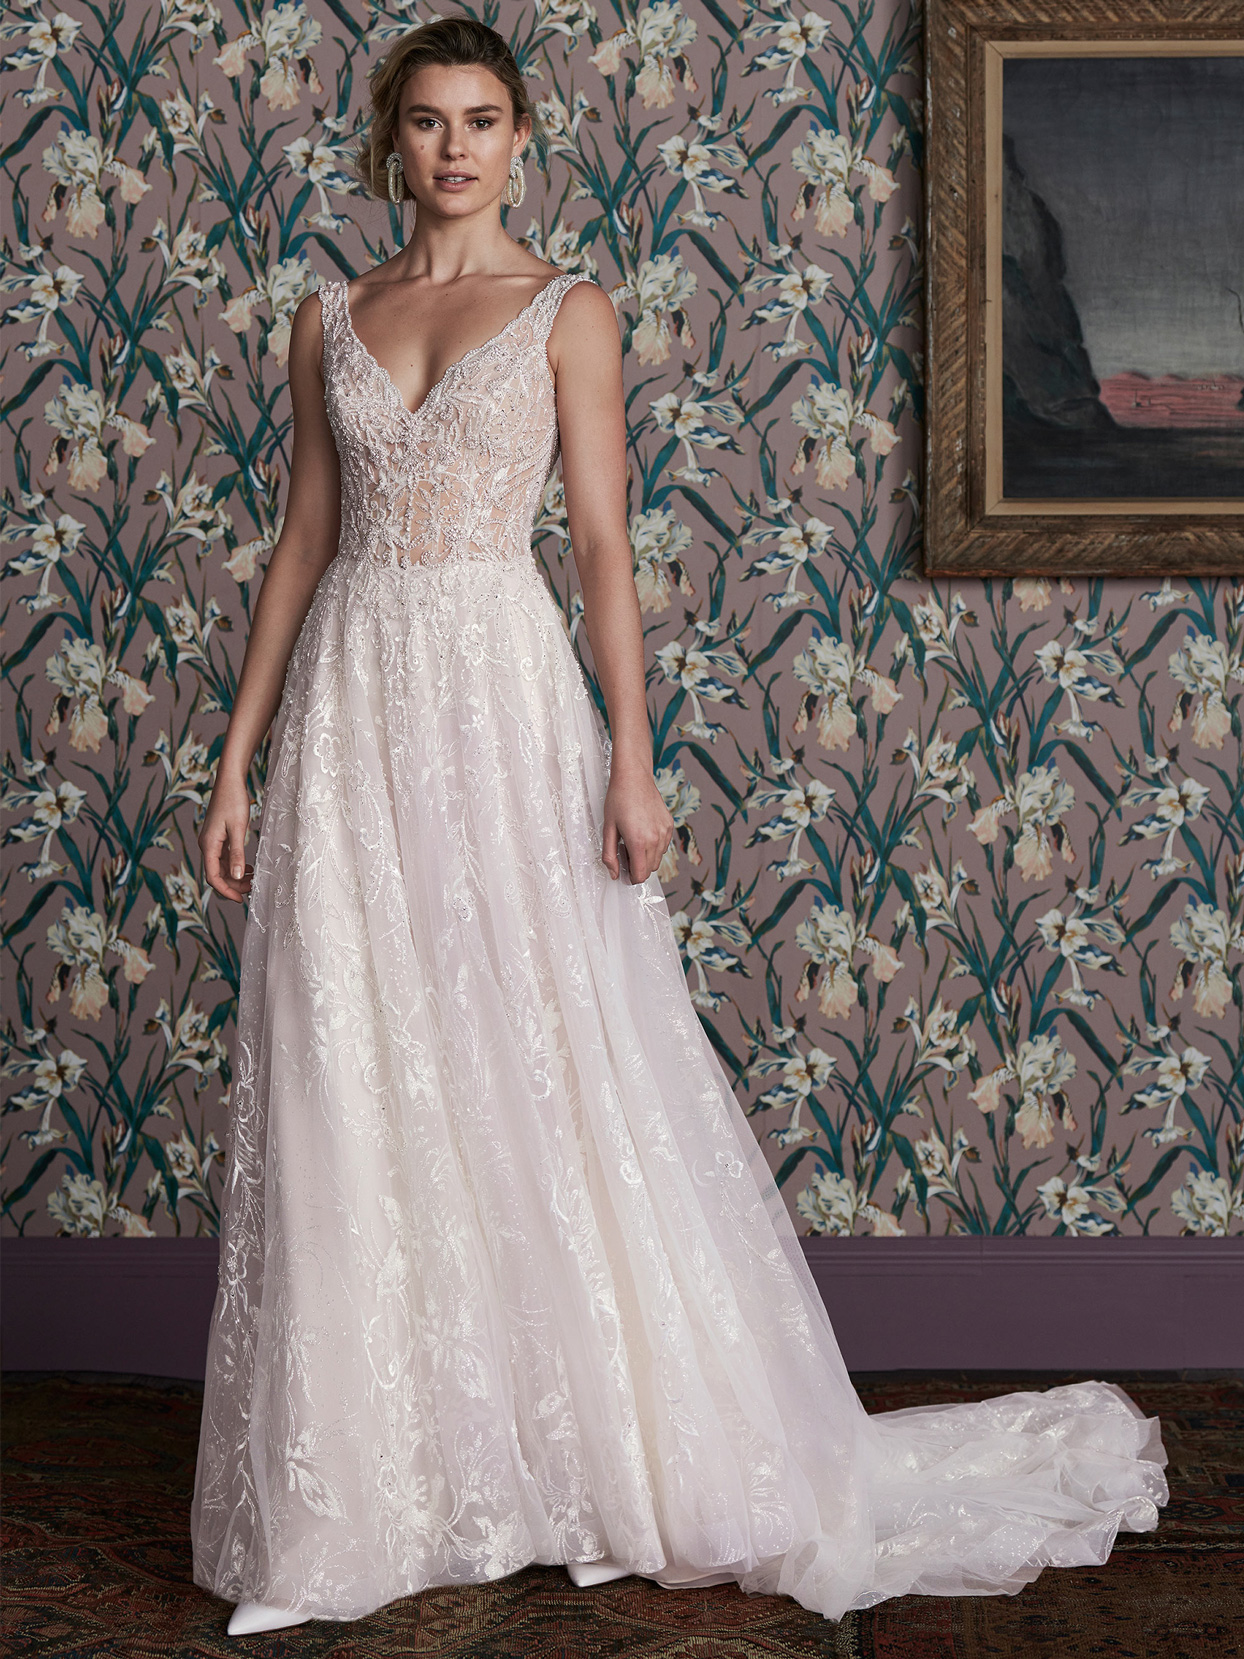 justin alexander sheer lace bodice a-line wedding dress spring 2021